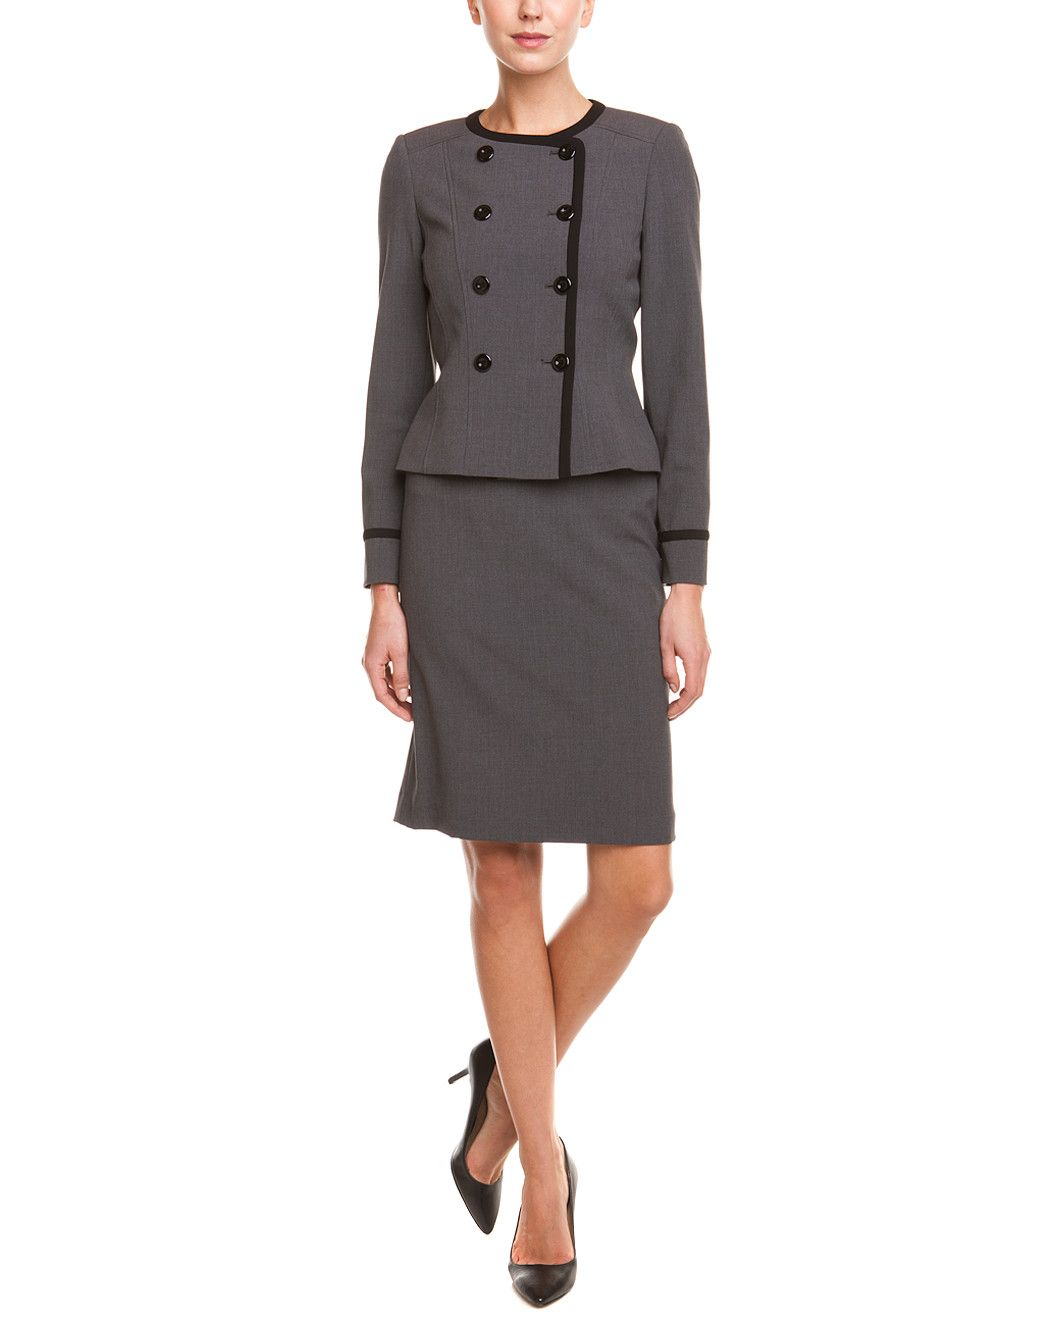 1f3d3e20e1f Tahari ASL Grey & Black Double-Breasted Skirt Suit | Suit Up ...